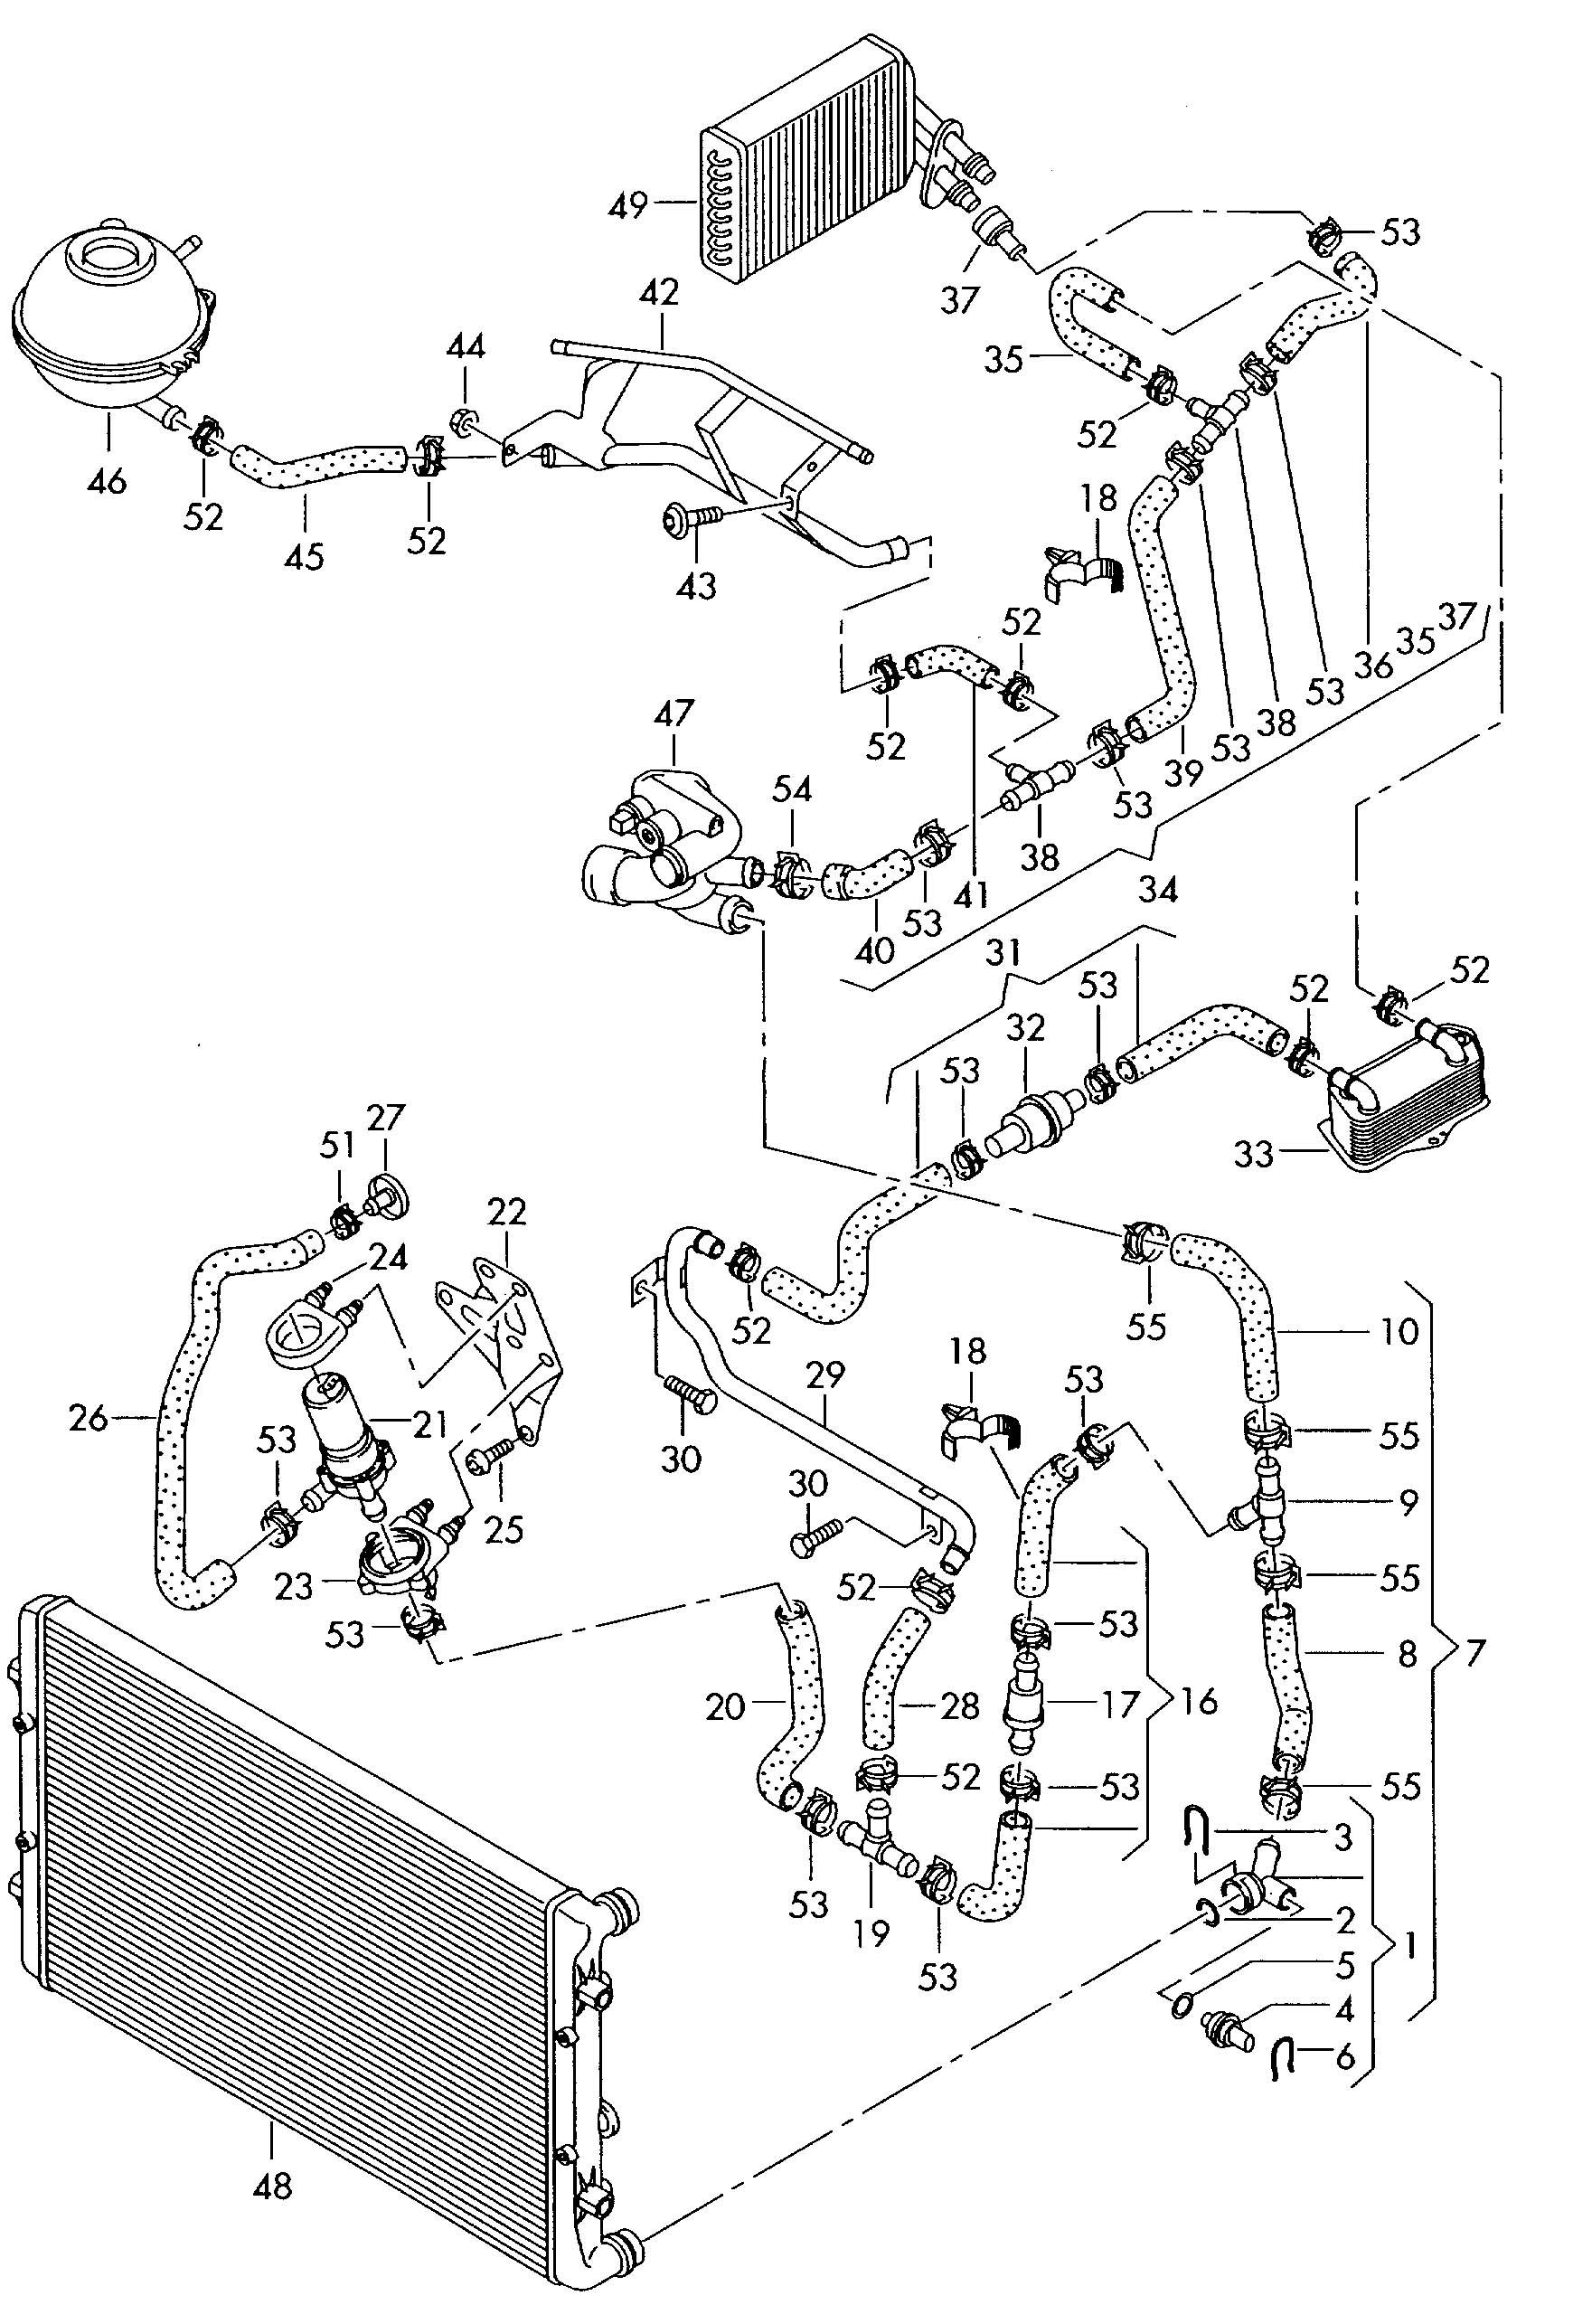 hight resolution of audi a3 cooling system diagram audi audi a3 audi cooling systemaudi a3 cooling system